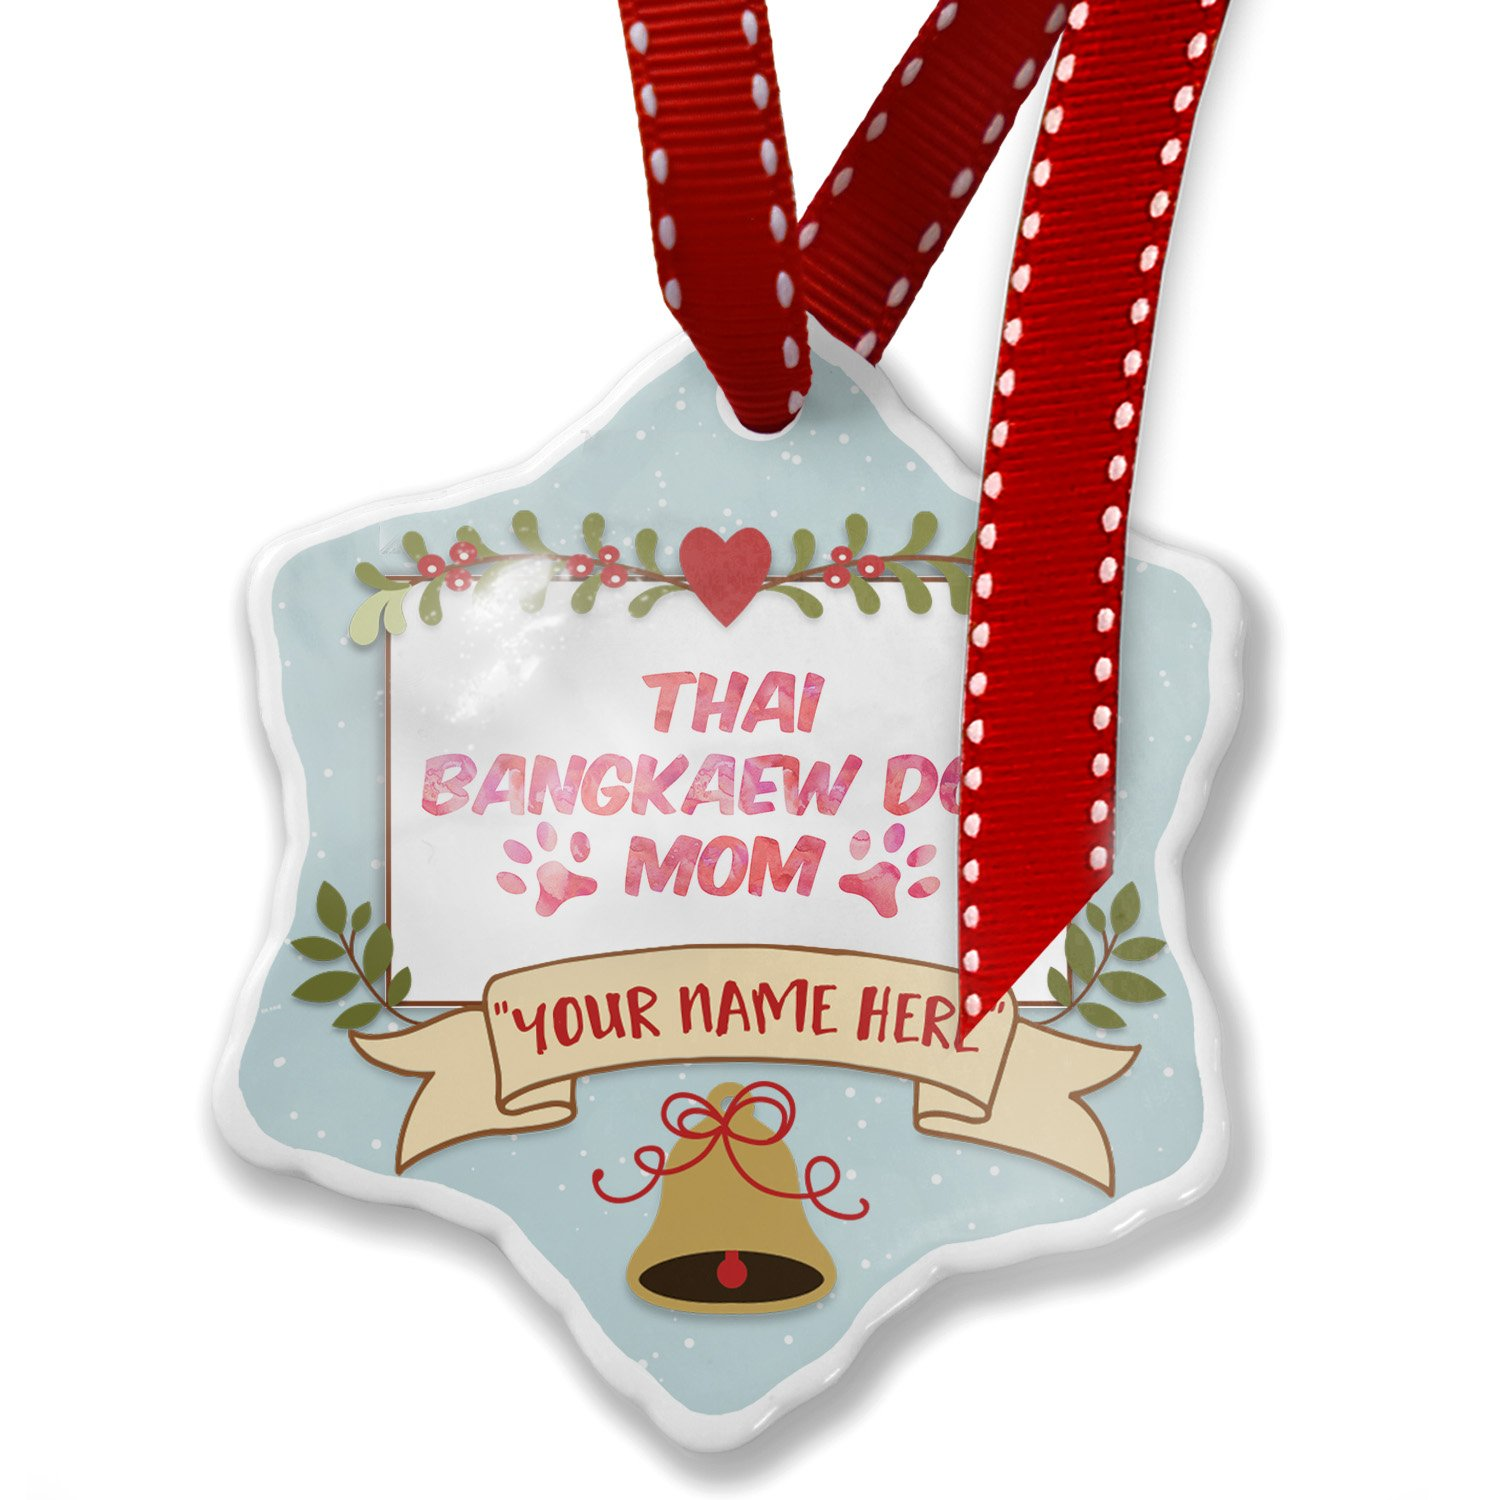 Add Your Own Custom Name, Dog & Cat Mom Thai Bangkaew Dog Christmas Ornament NEONBLOND by NEONBLOND